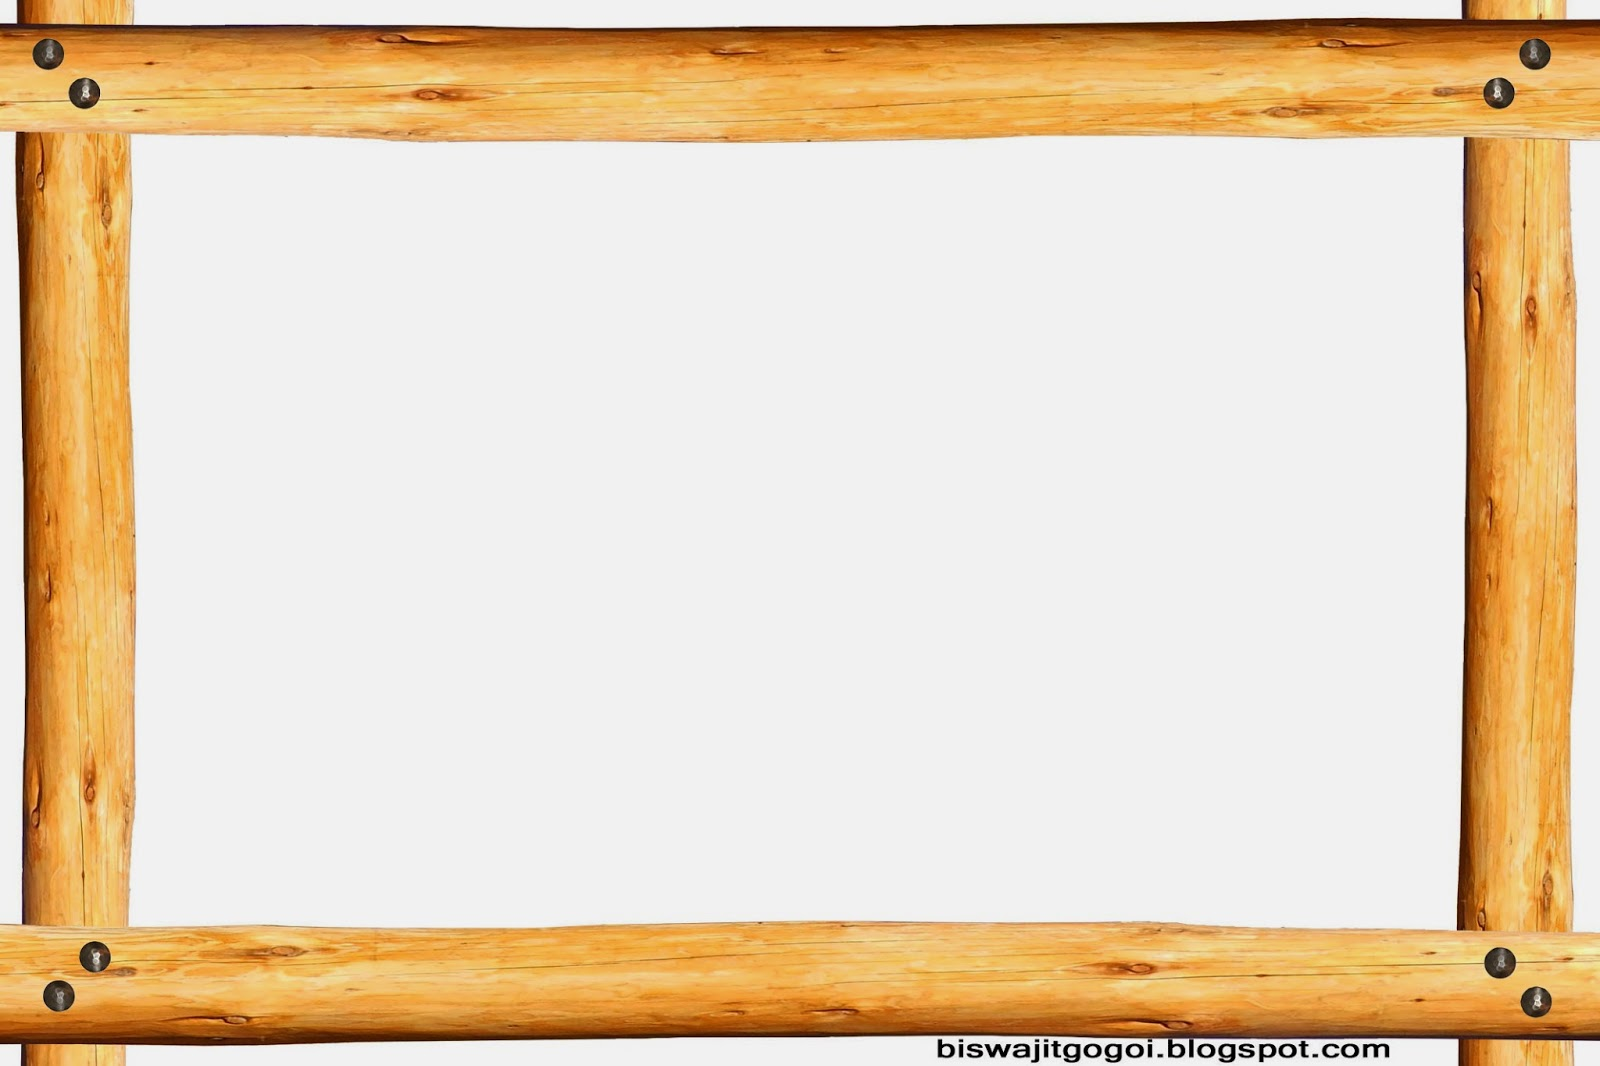 Wooden photo frame clipart.